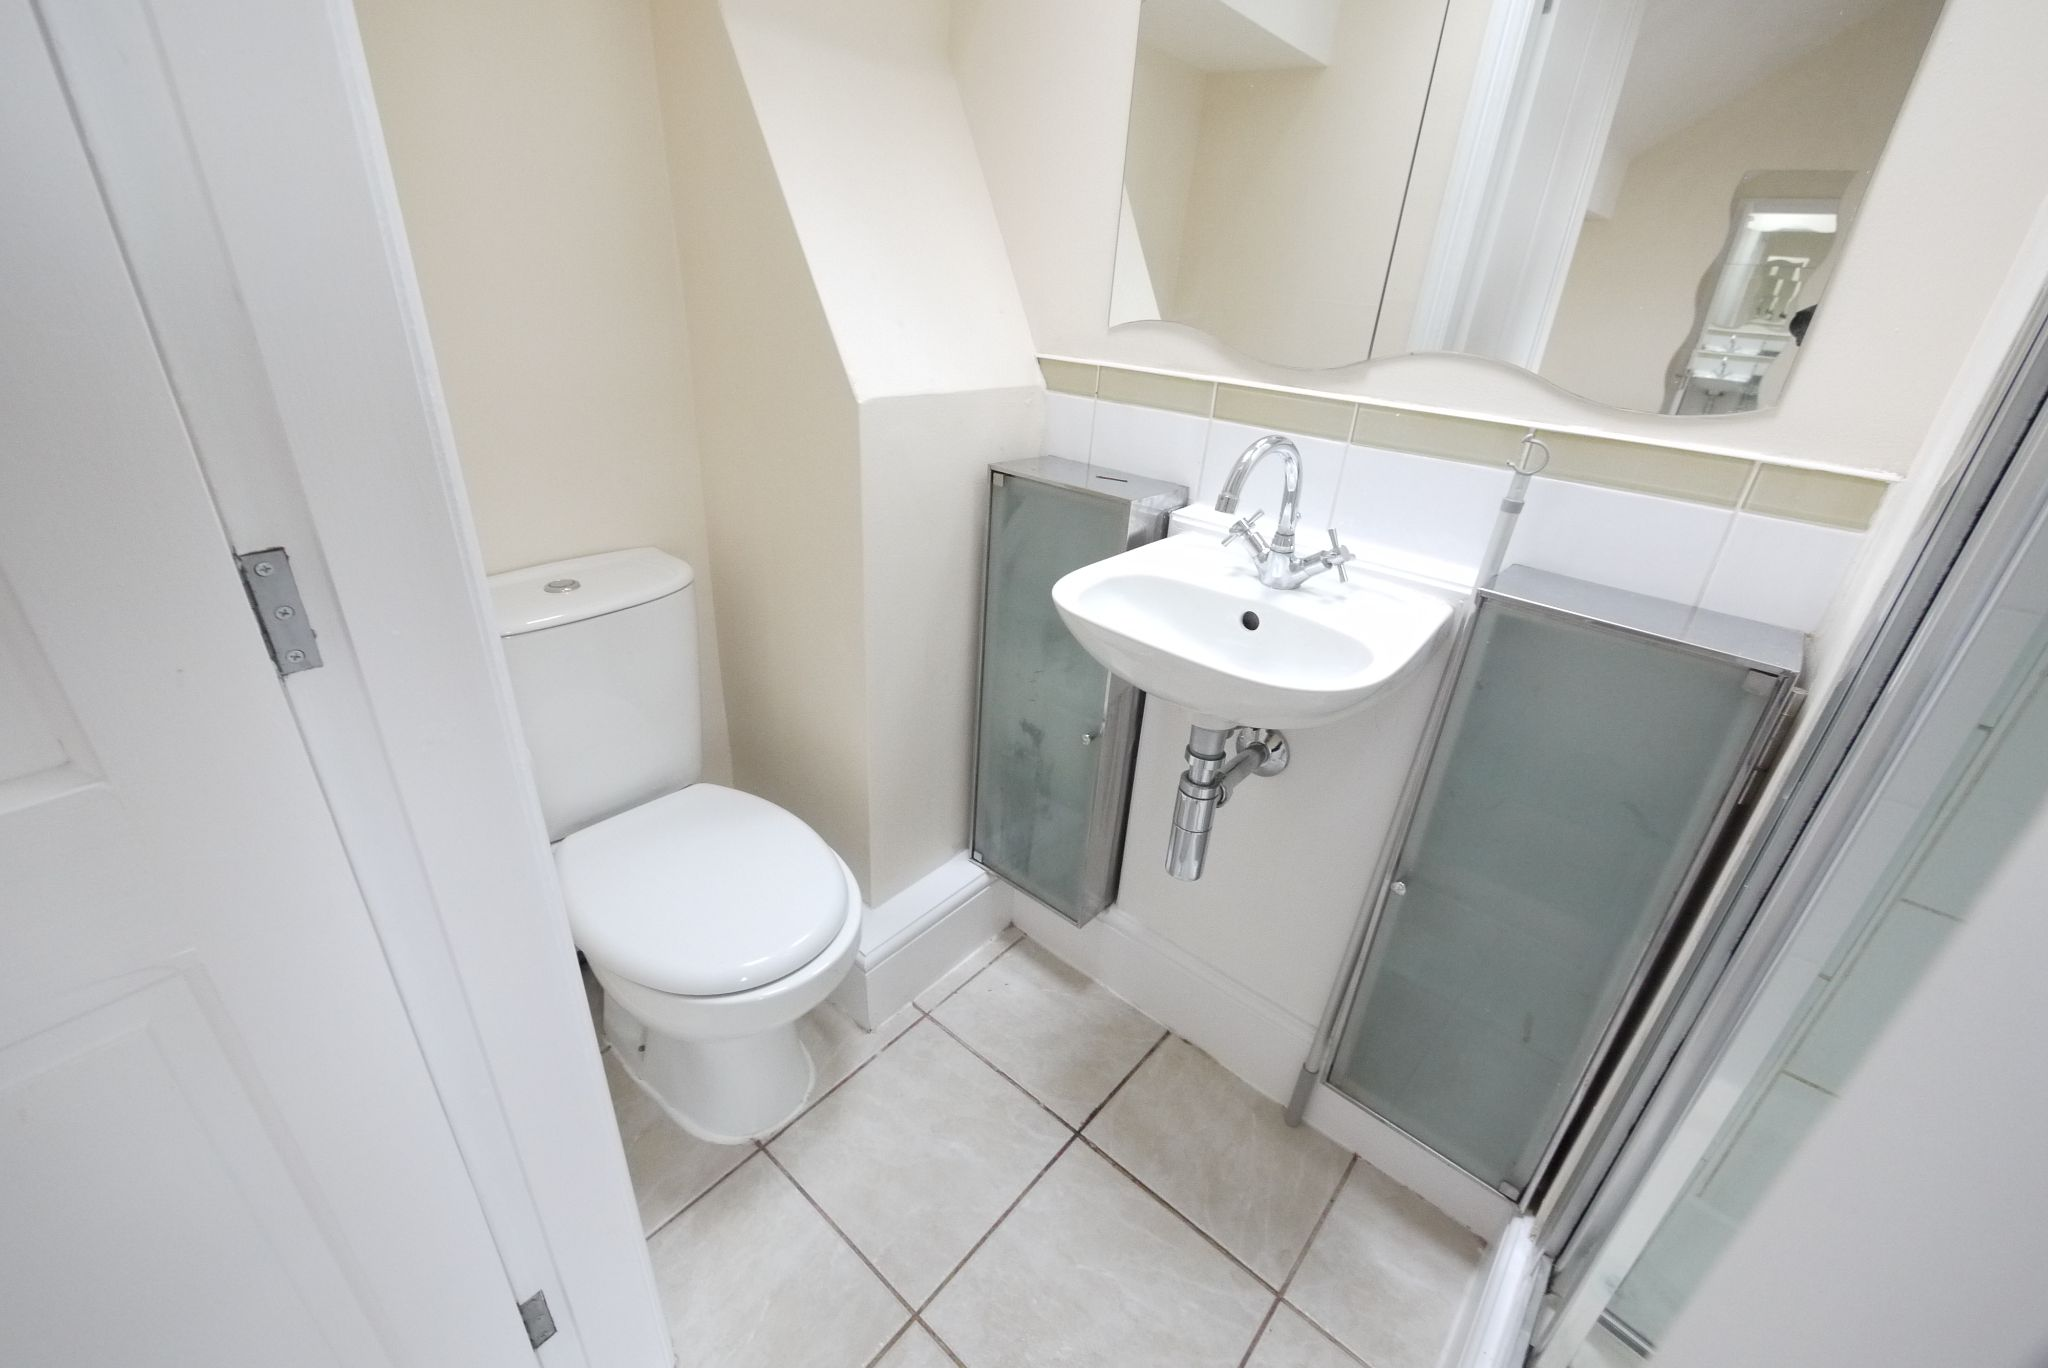 3 bedroom mid terraced house SSTC in Bradford - Photograph 9.